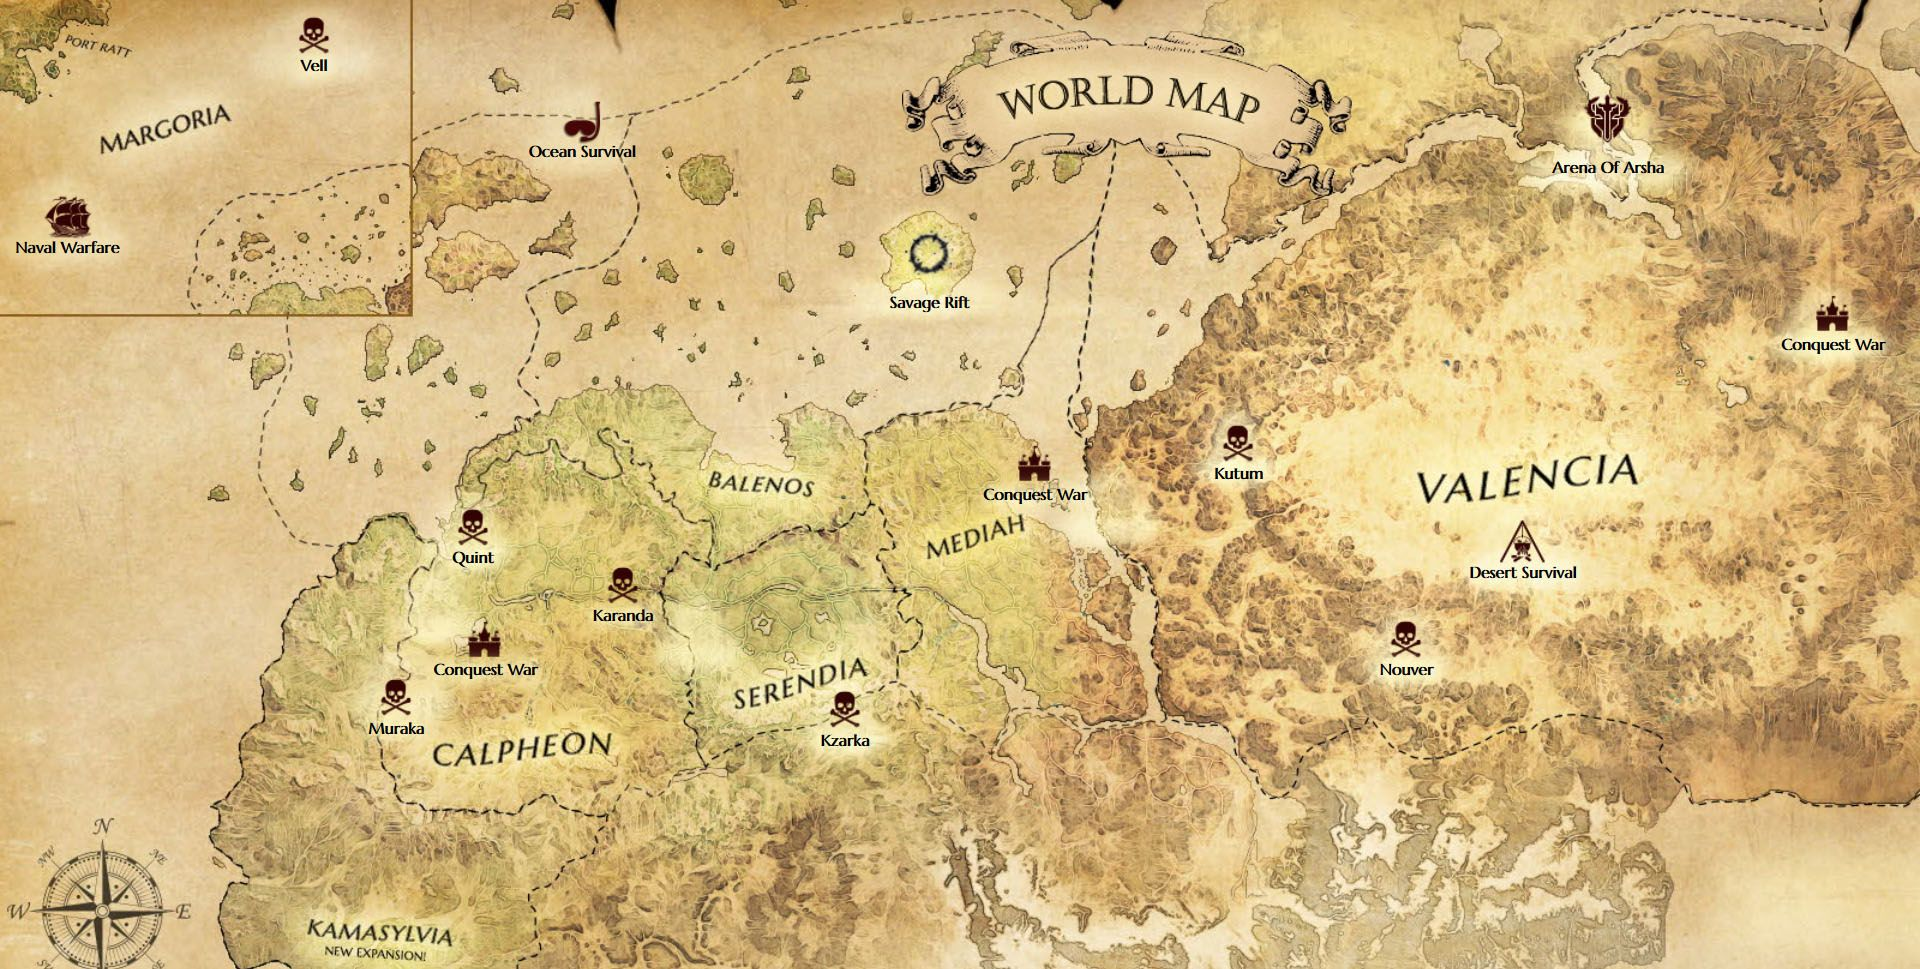 Black desert world map maps pinterest black desert world map gumiabroncs Images